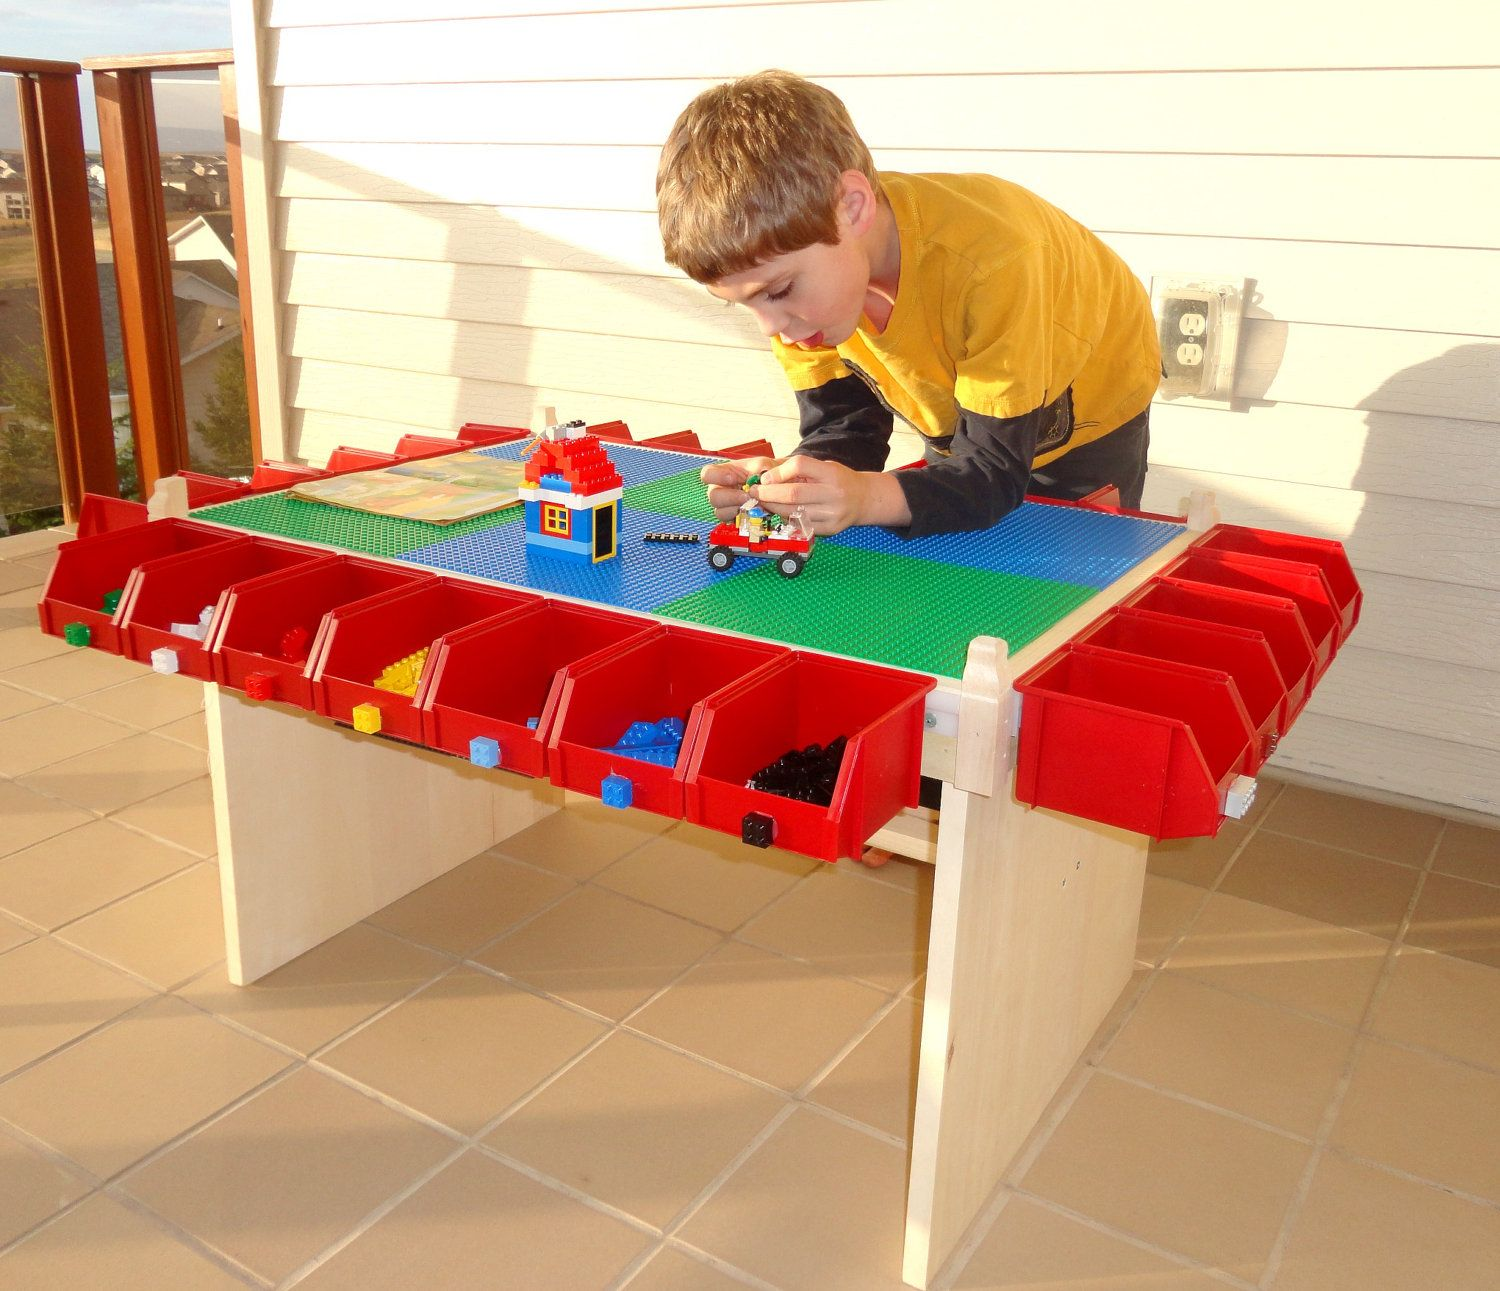 Lego Table I Wonder If The Little Plastic Holders From